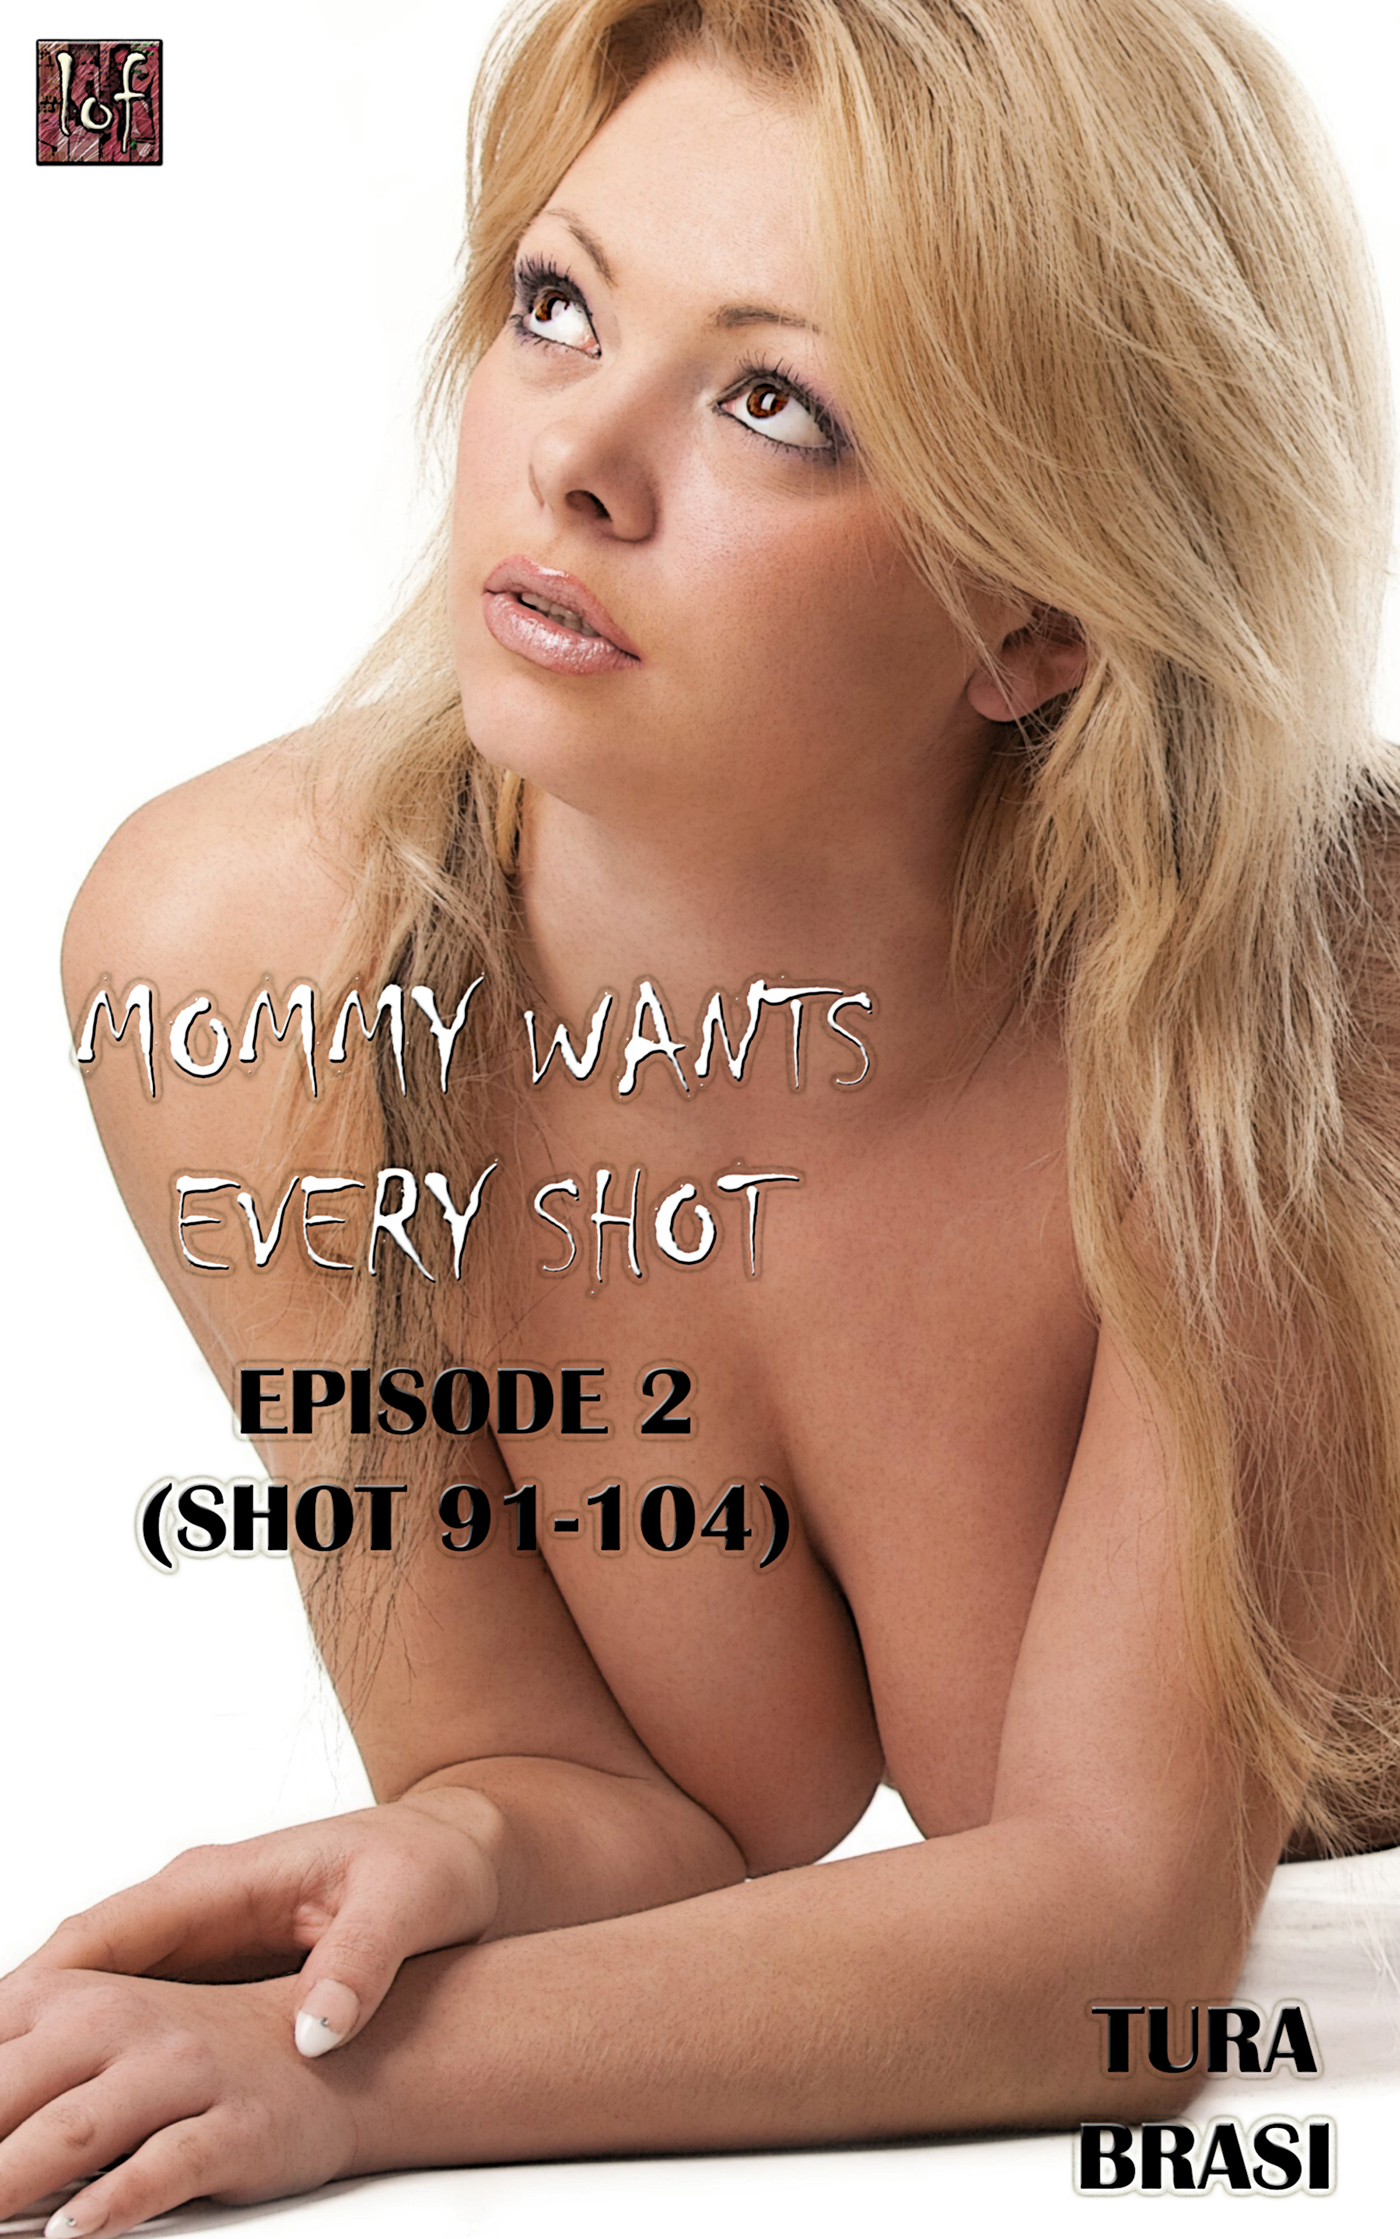 Mommy Wants Every Shot: Episode 2 (Shot 91-104)